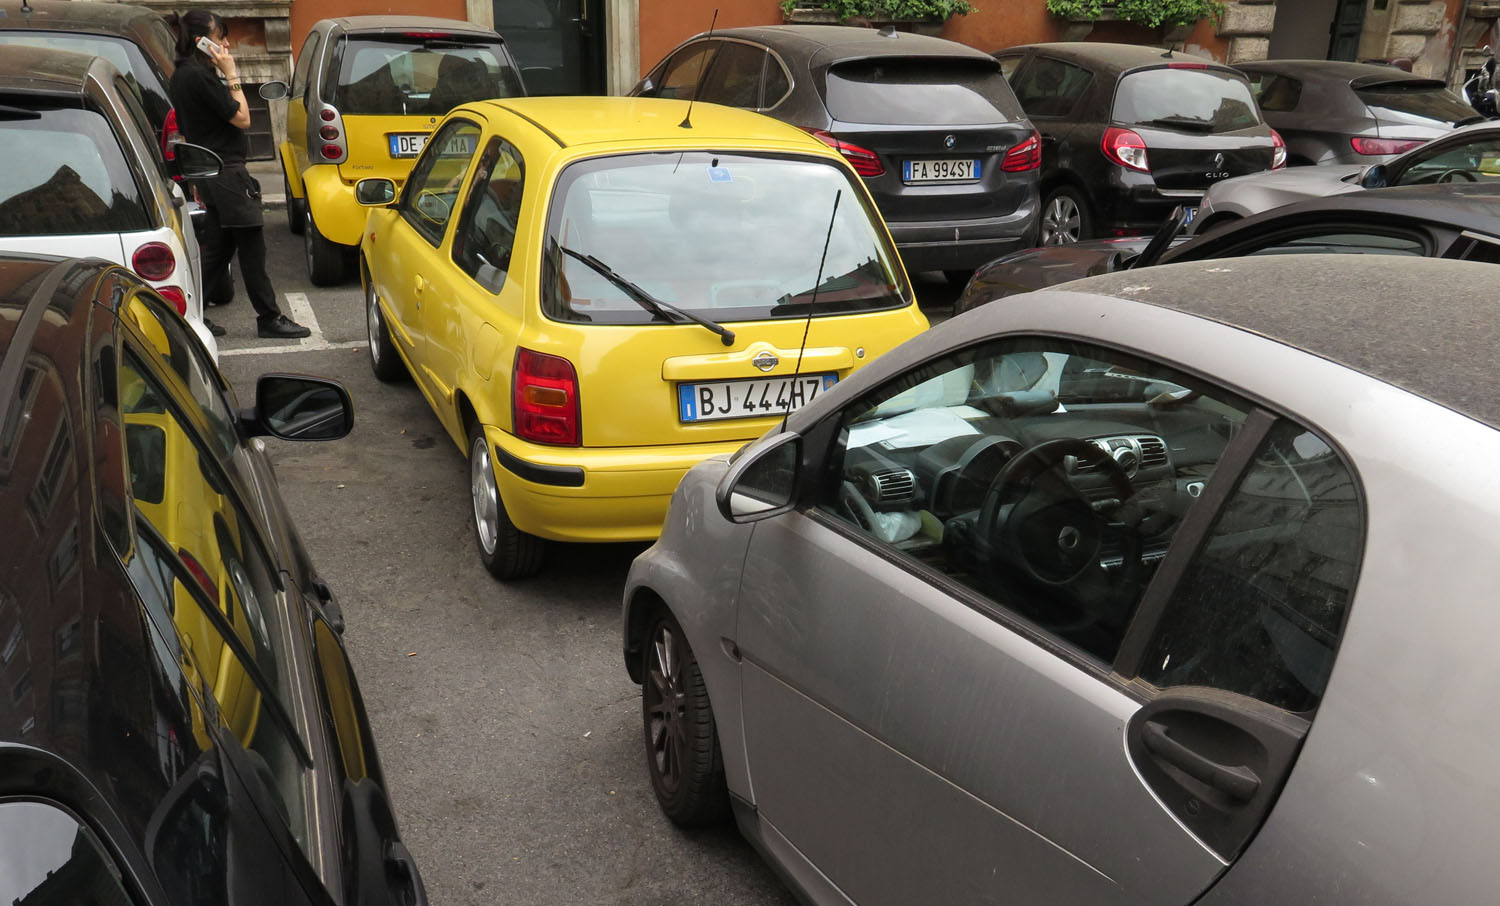 Italy-Rome-Street-Scenes-Parking